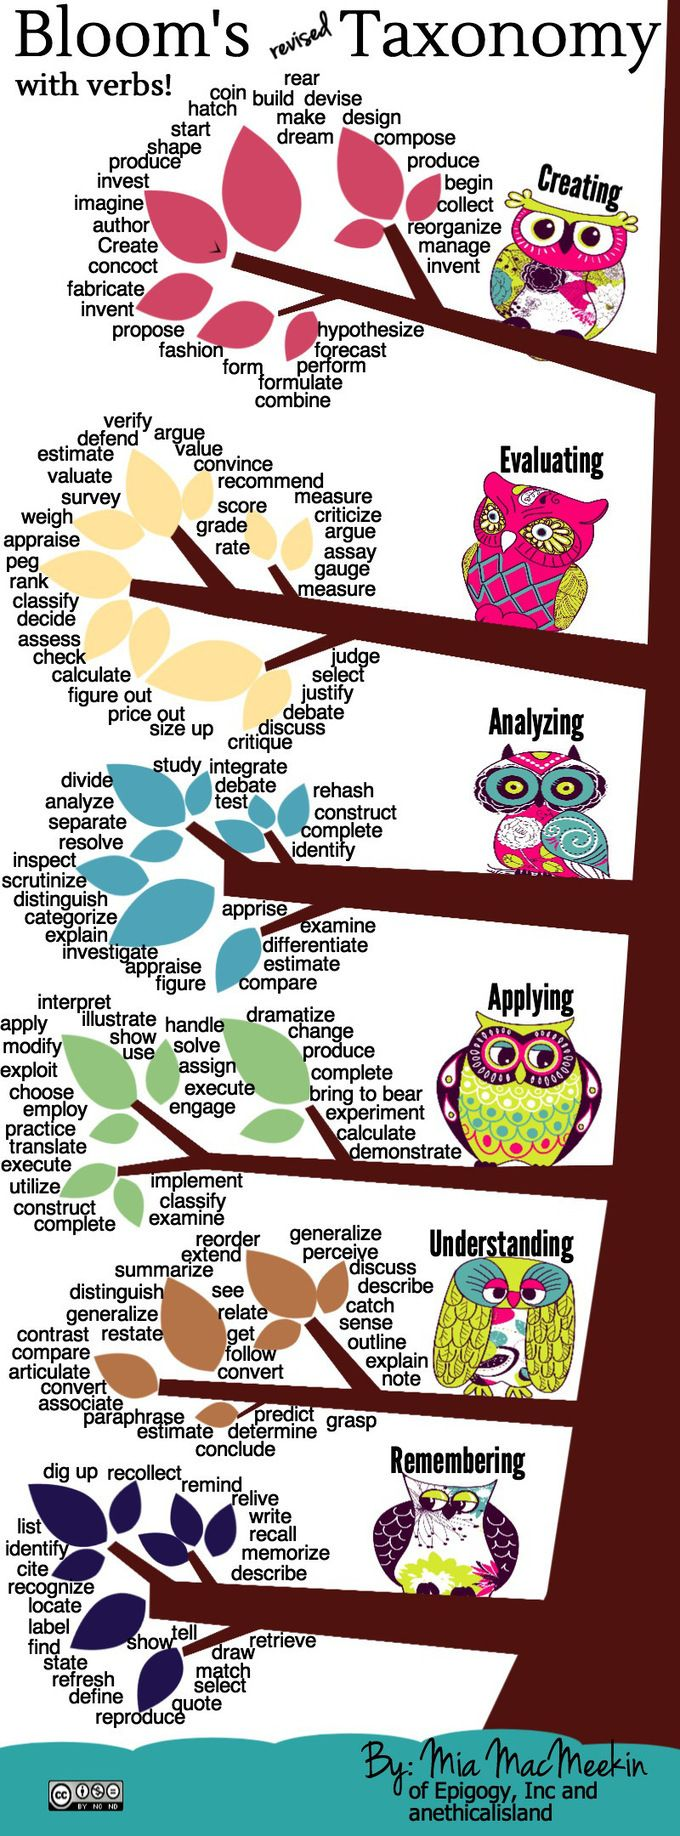 Bloom's Revised Taxonomy Action Verbs infographic - e-Learning Infographics